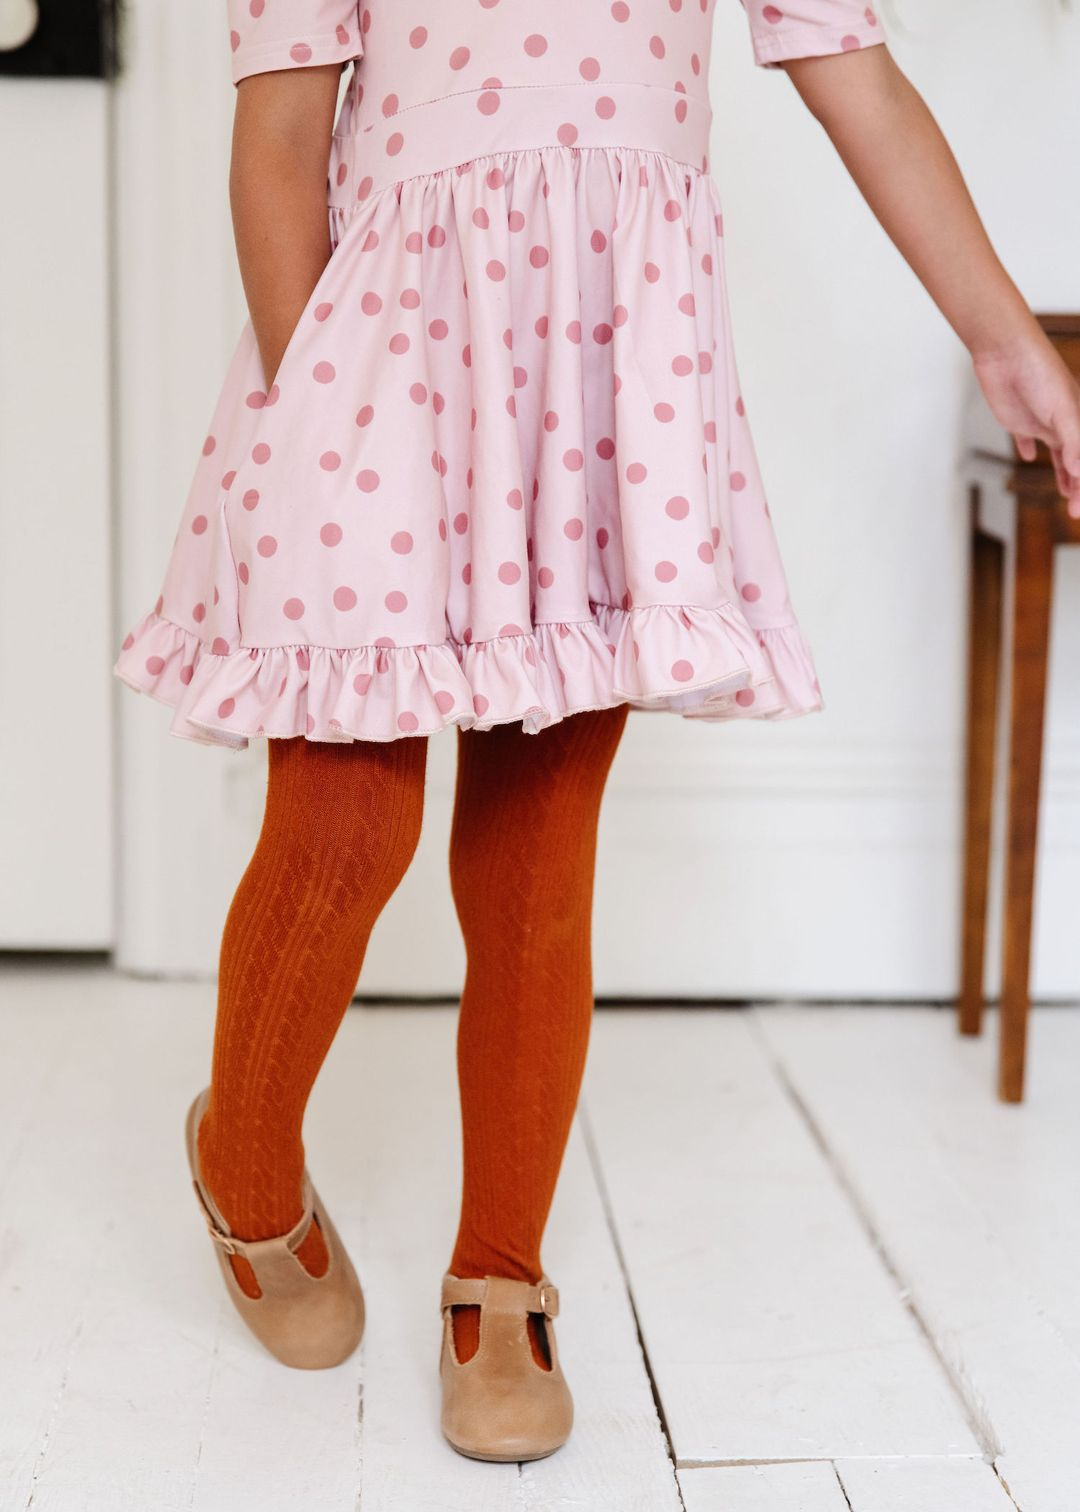 Image of Pumpkin Spice Cable Knit Tights